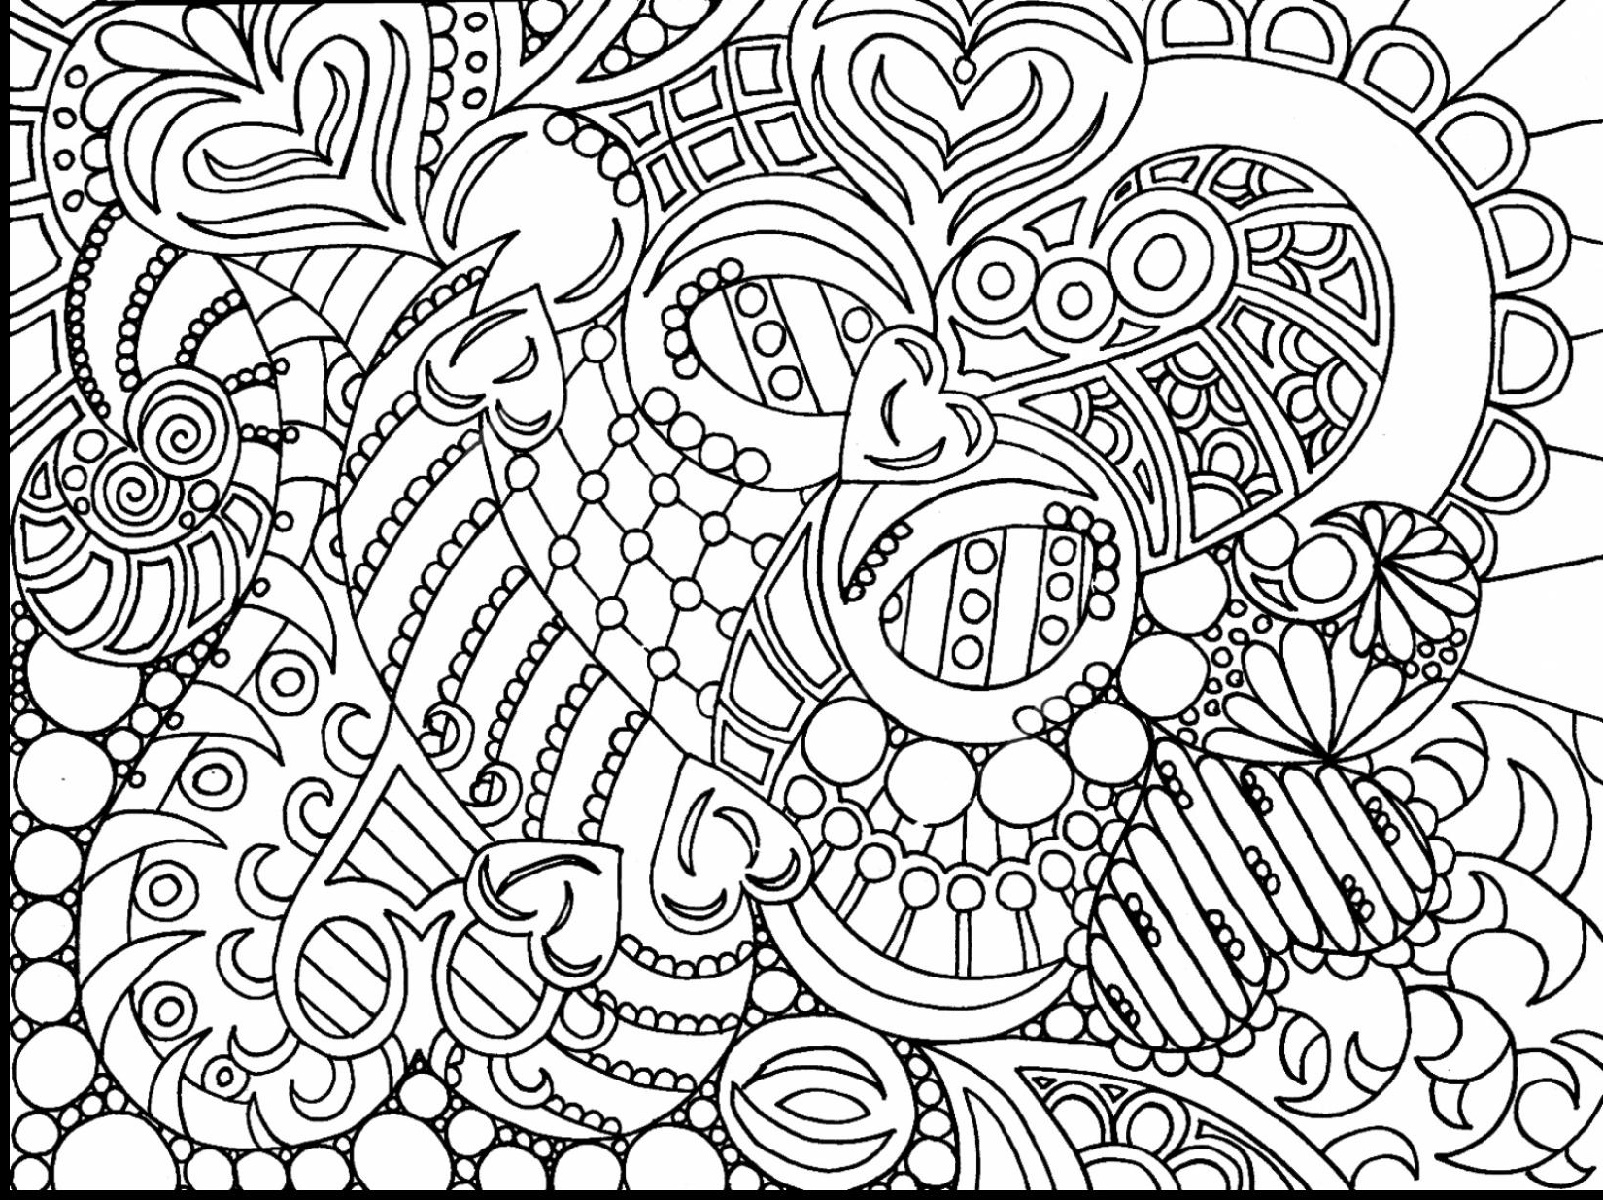 Printable-Coloring-Pages-for-Adults-Free-1